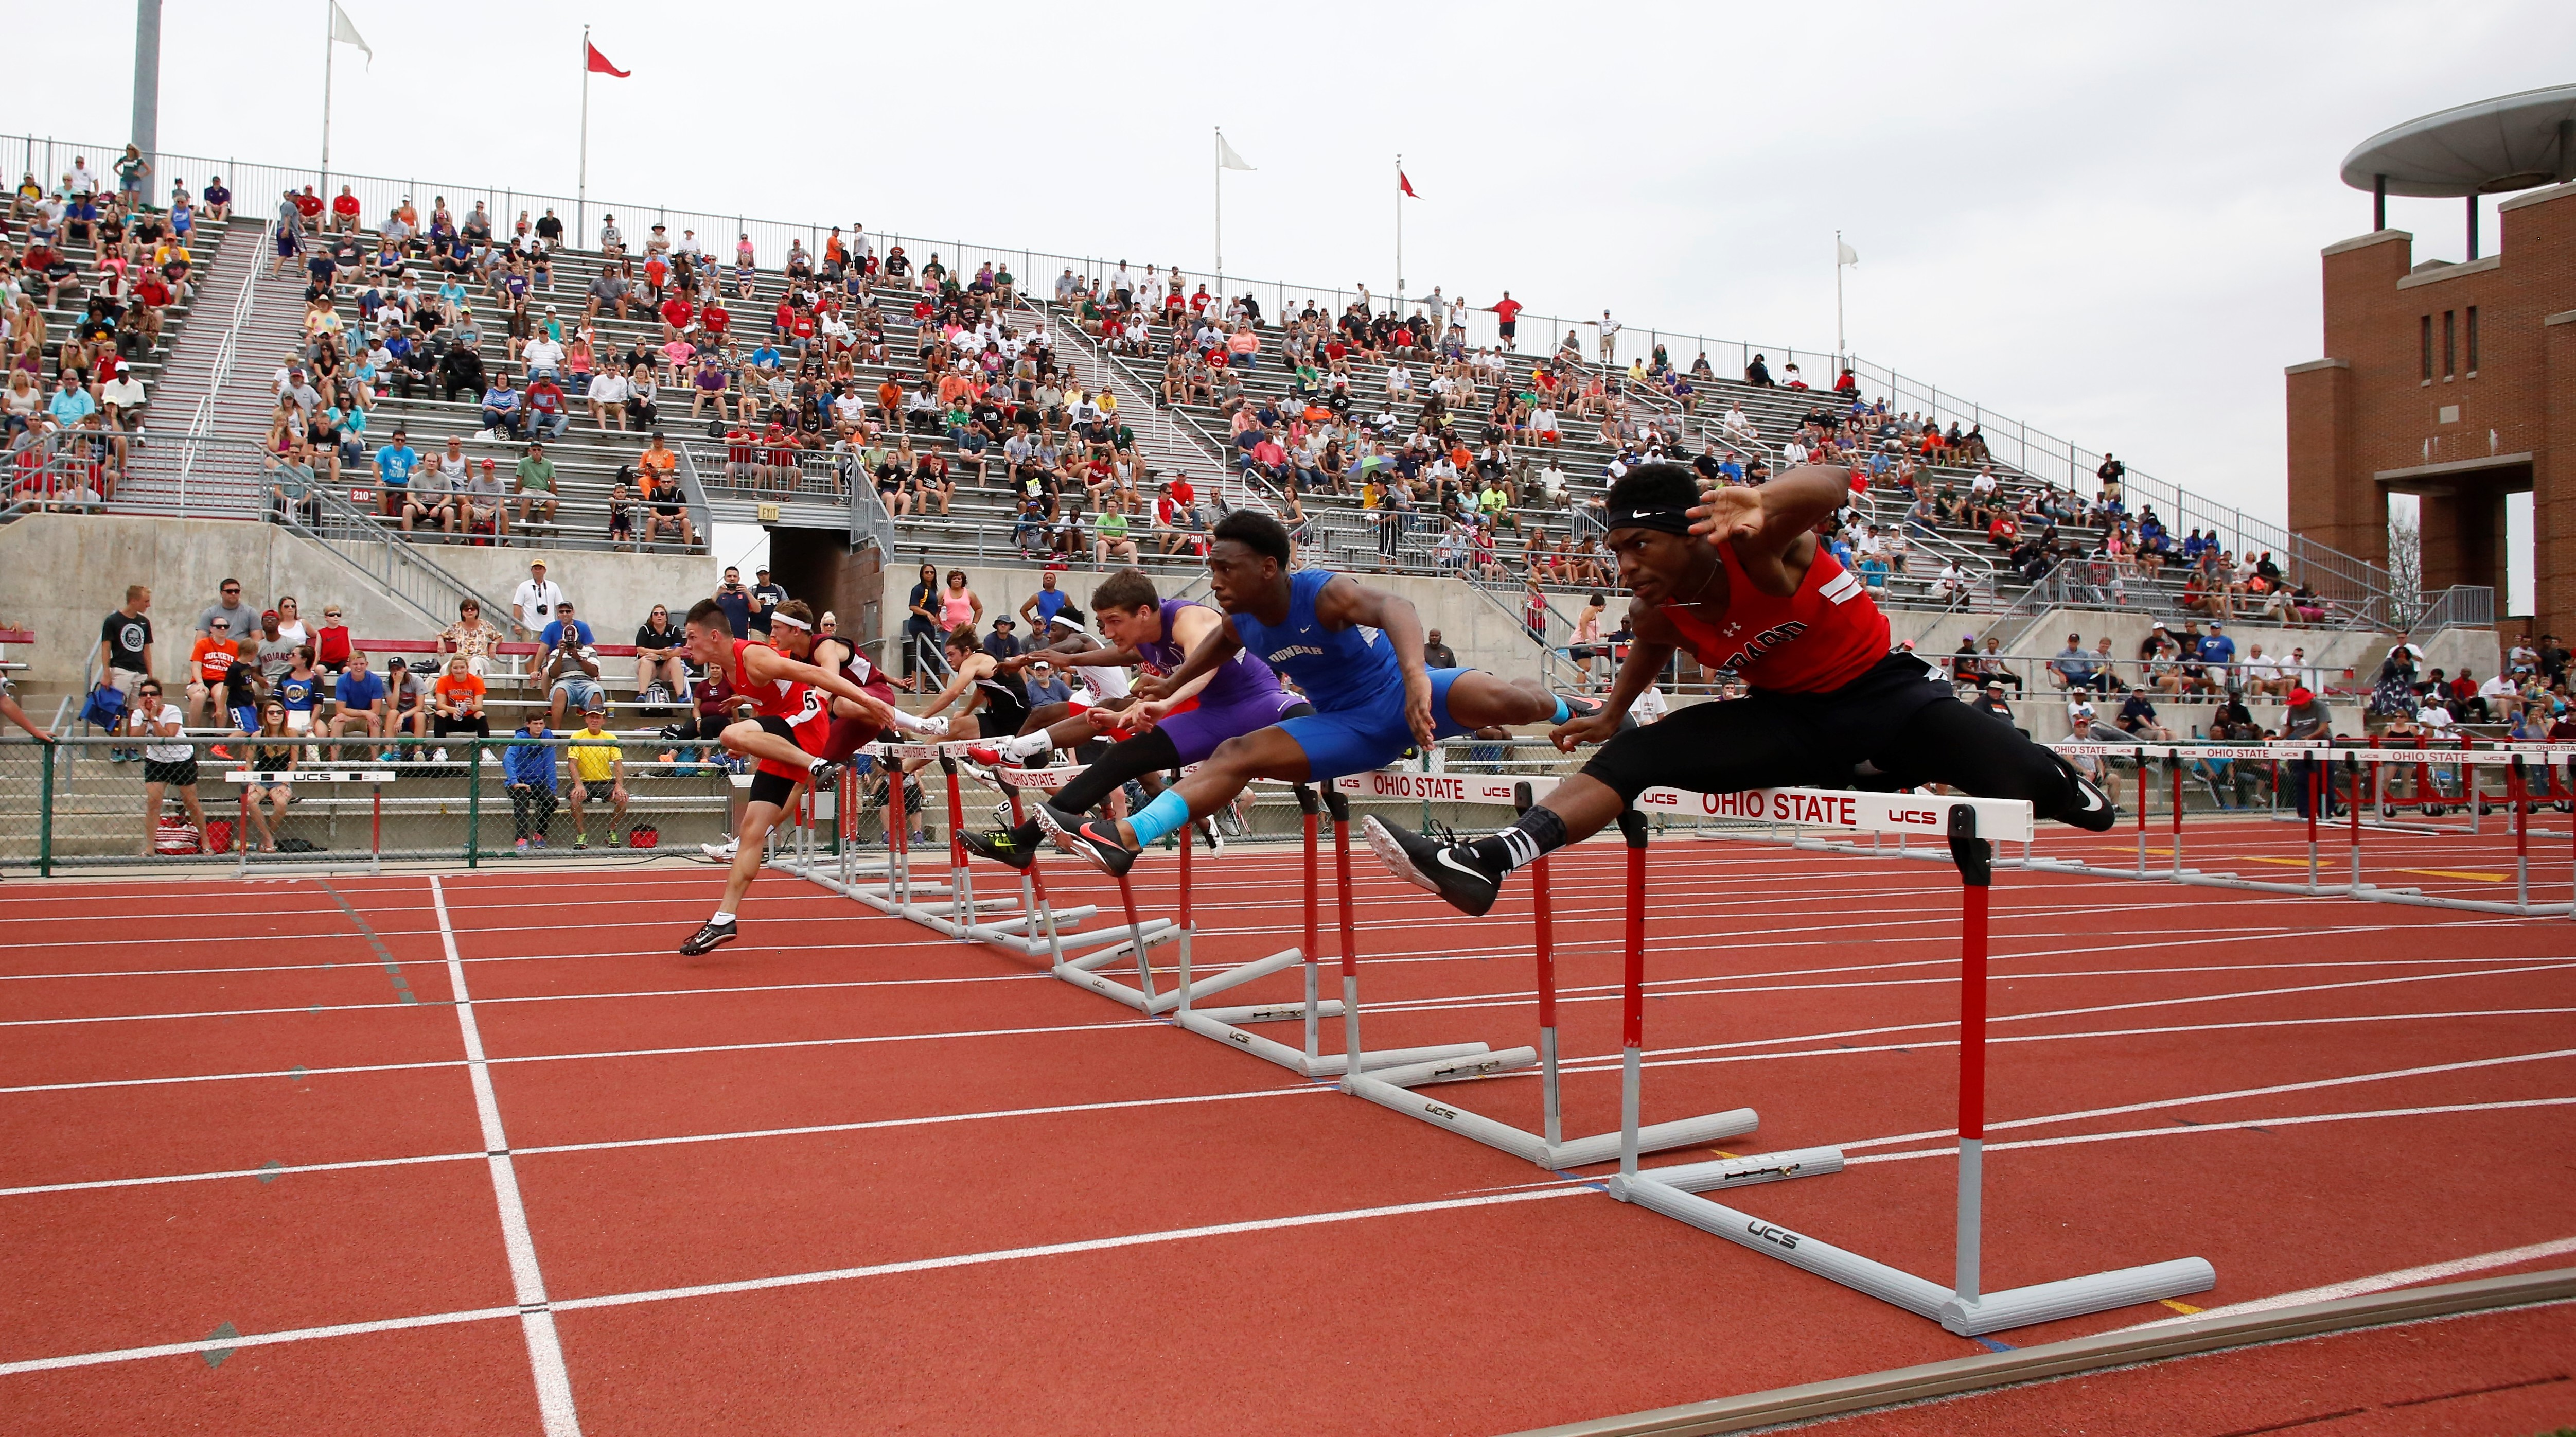 2017 OHSAA Track & Field State Championships Coverage Page